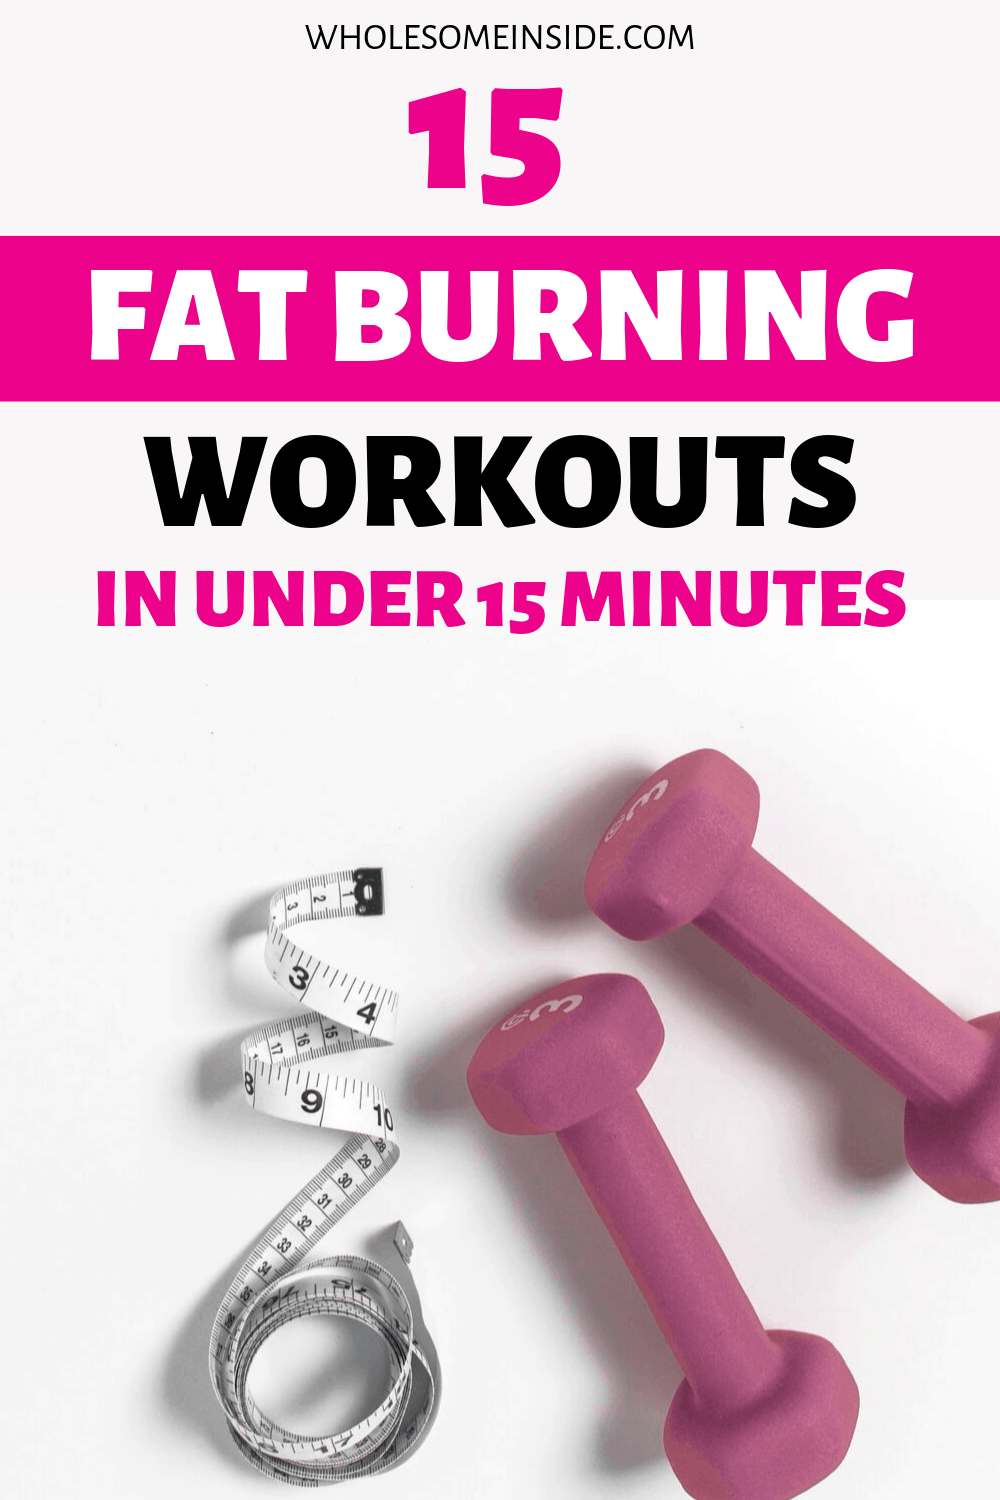 Fat Burning Workouts in under 15 minutes to help you tone up and lose weight